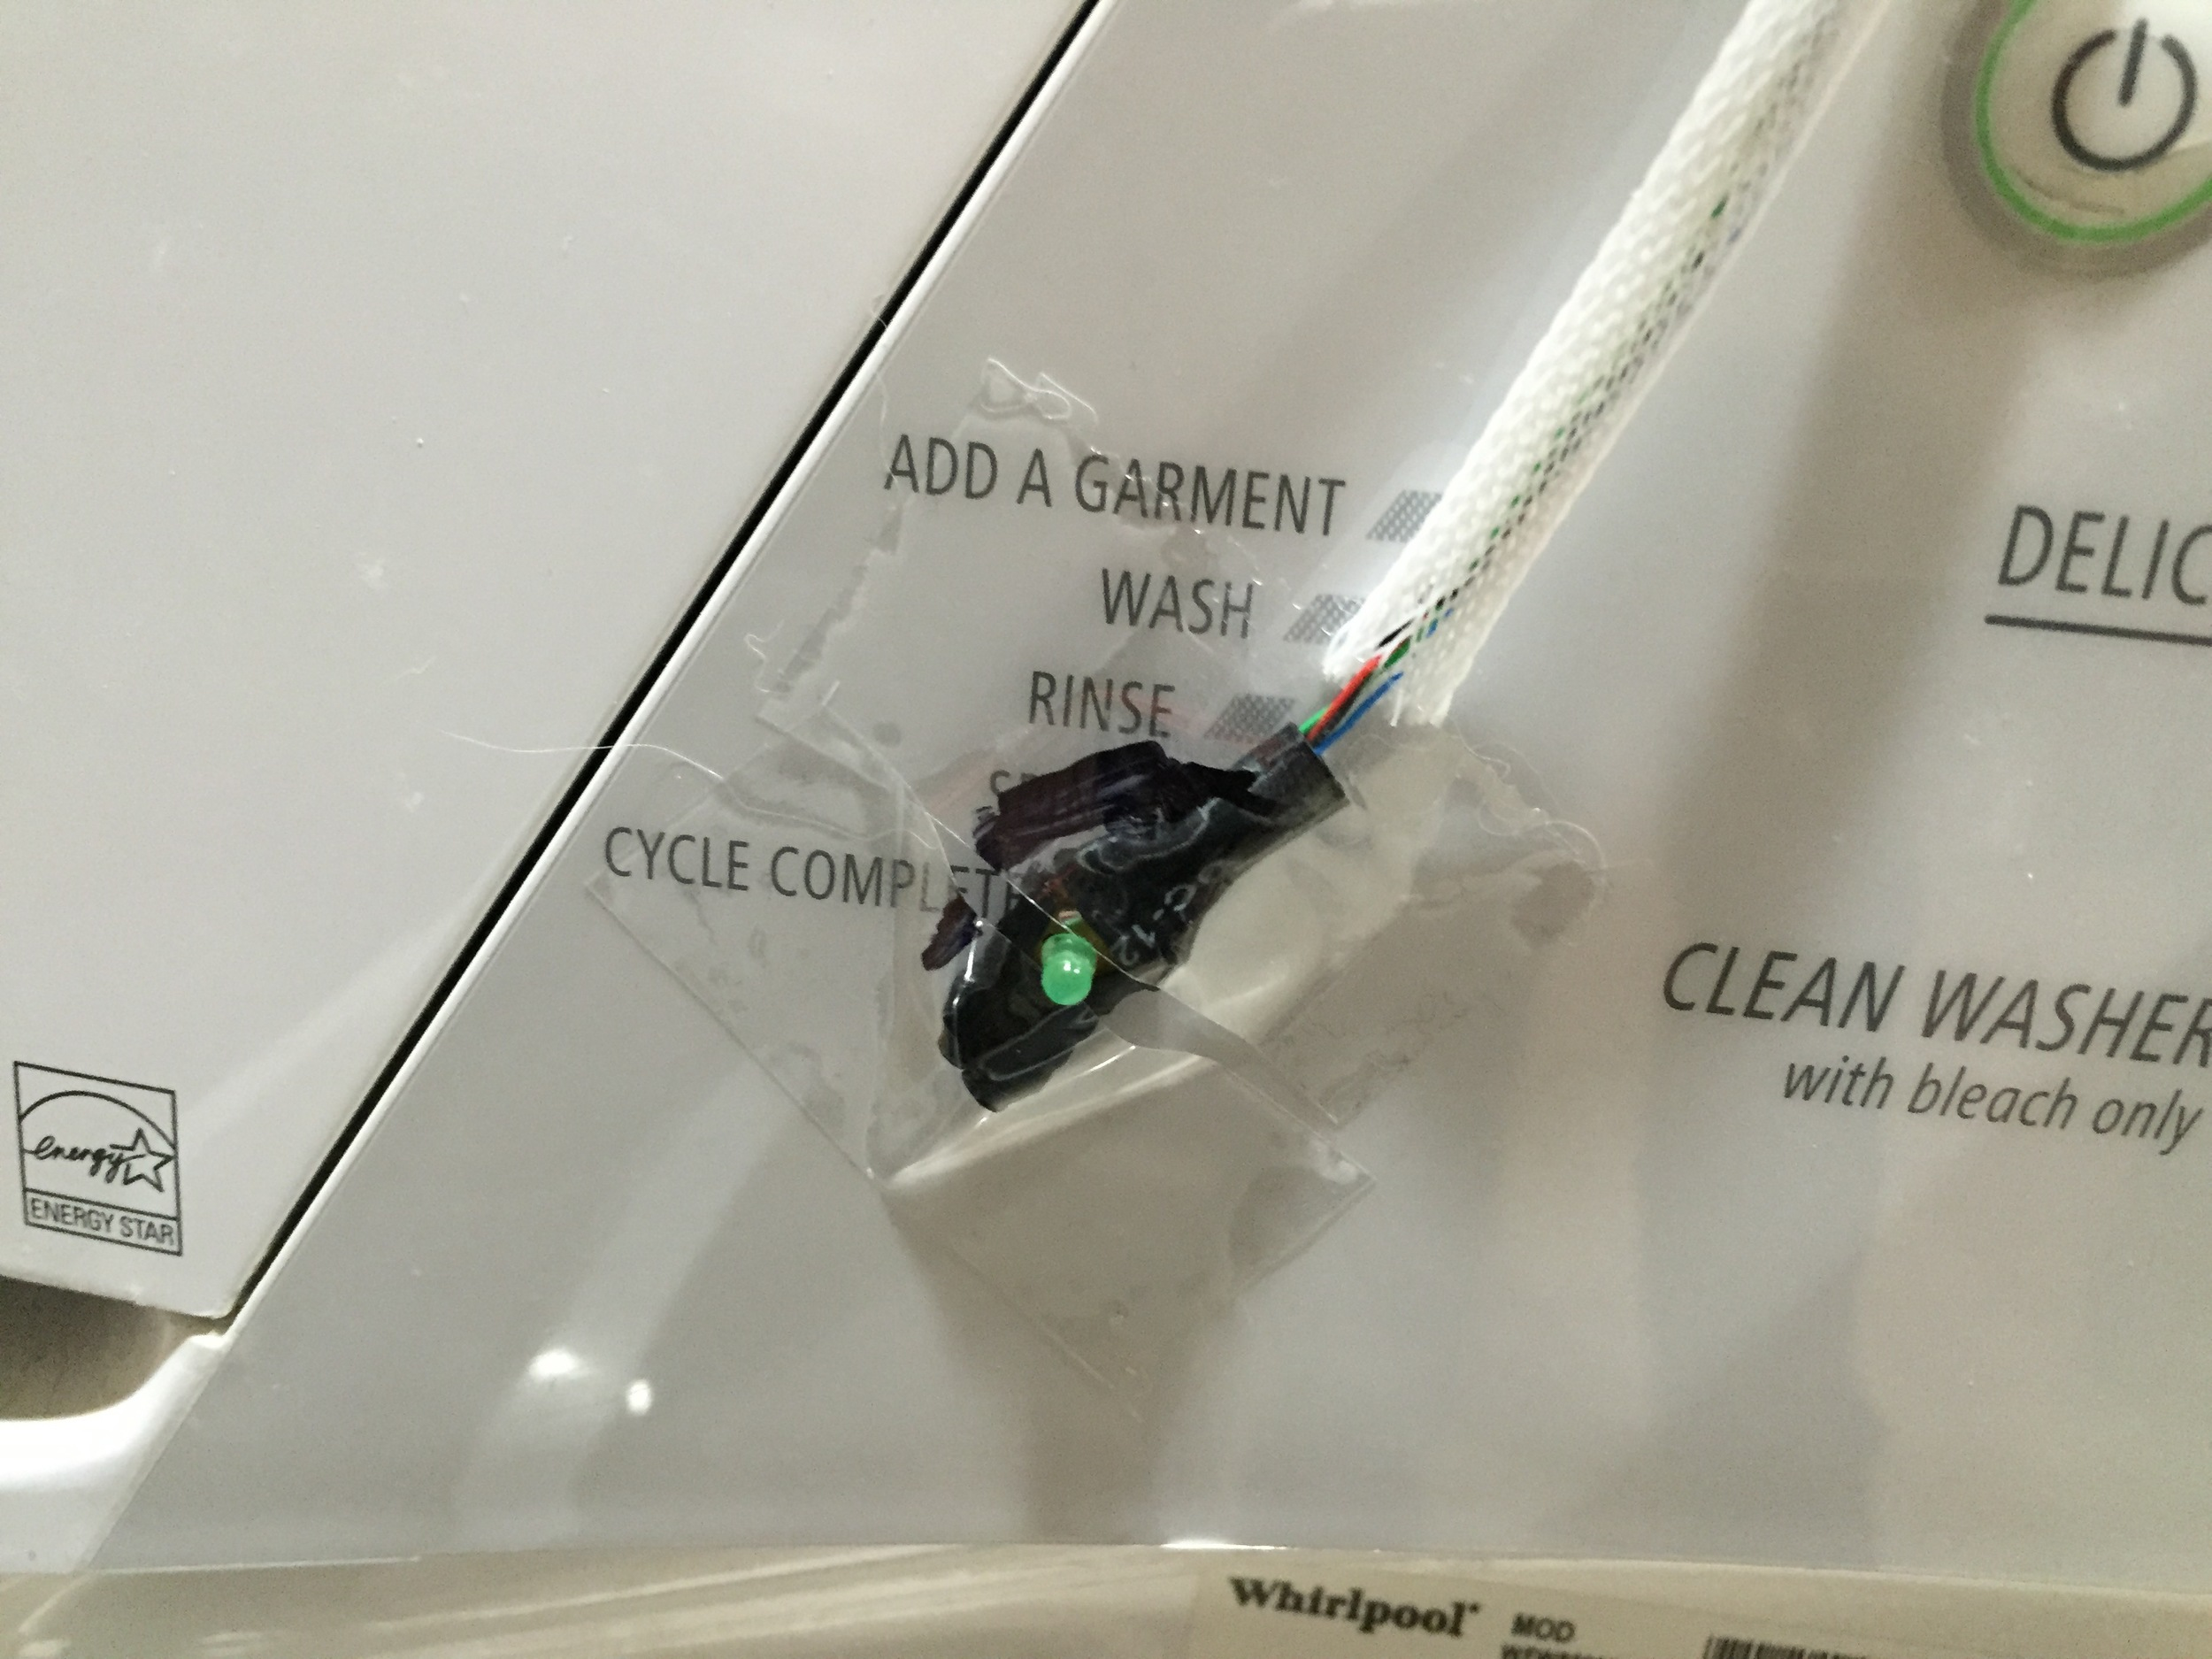 The poor job of mounting the washer sensor over the Cycle Complete LED.